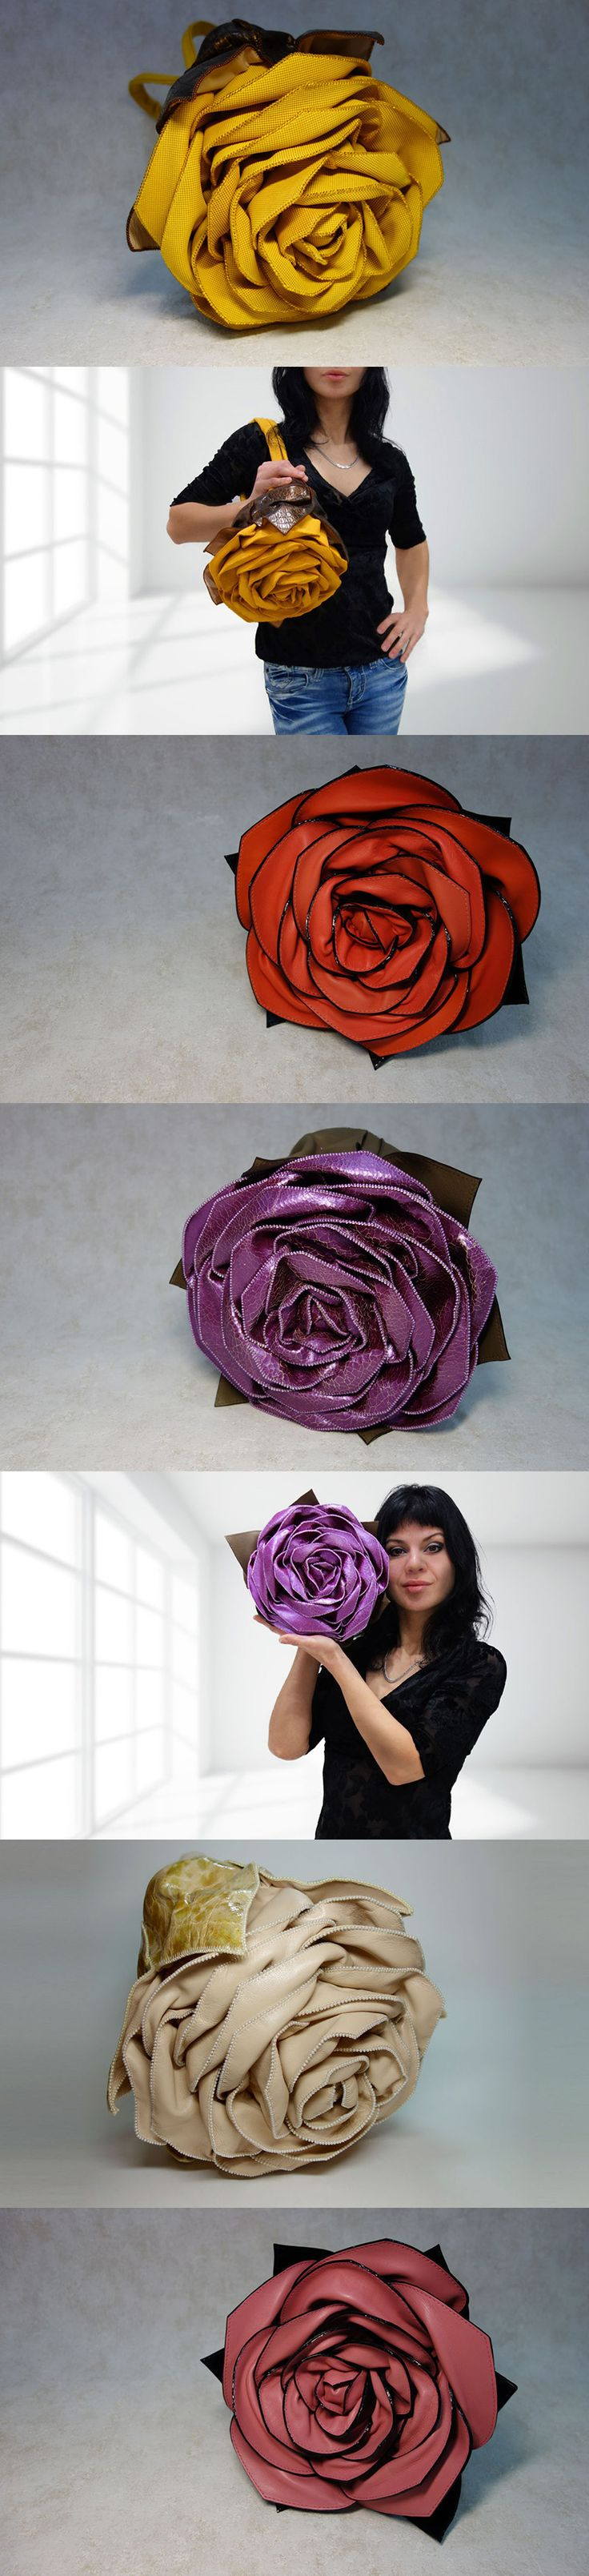 Tatyana Fot creates leather purses that look just like roses!